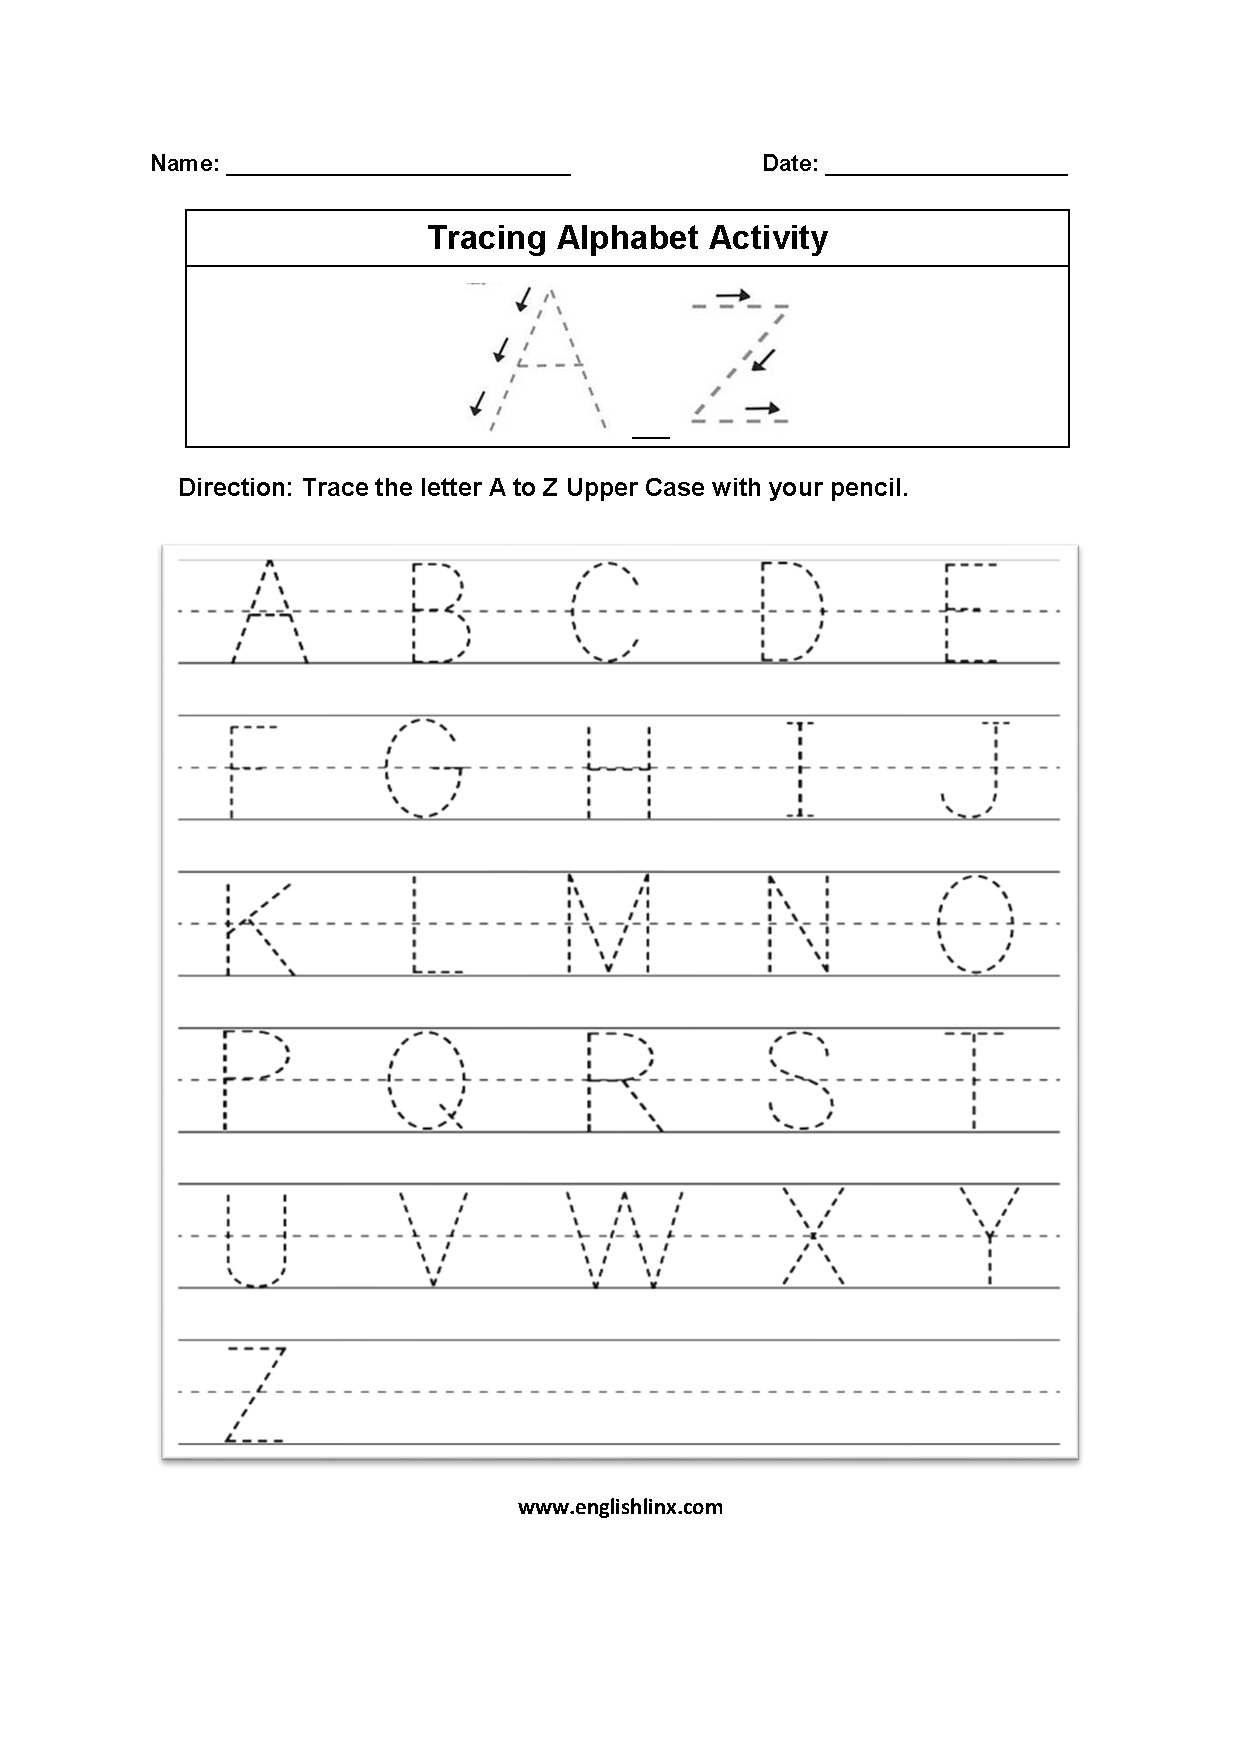 trace alphabet worksheets a z kidz activities. Black Bedroom Furniture Sets. Home Design Ideas